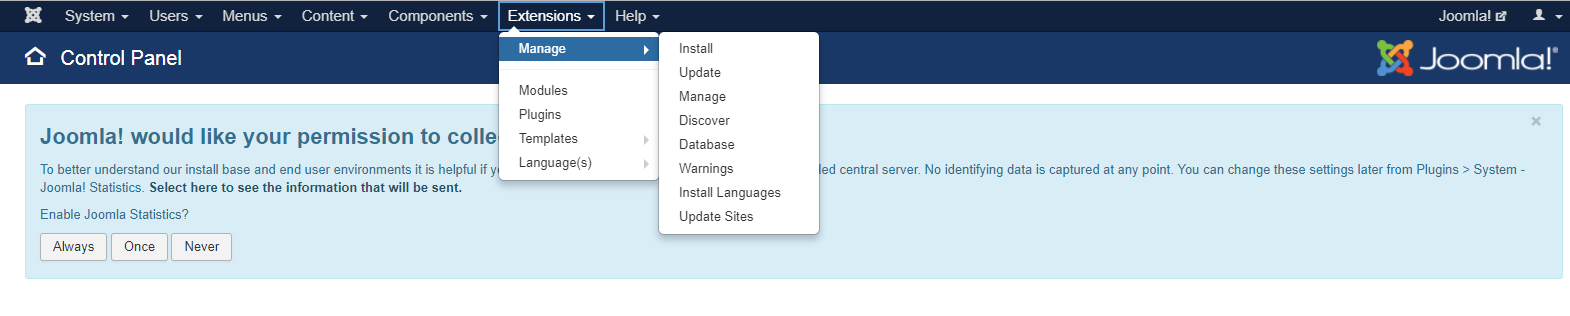 Navigate to Extensions and select Manage, and click Install.